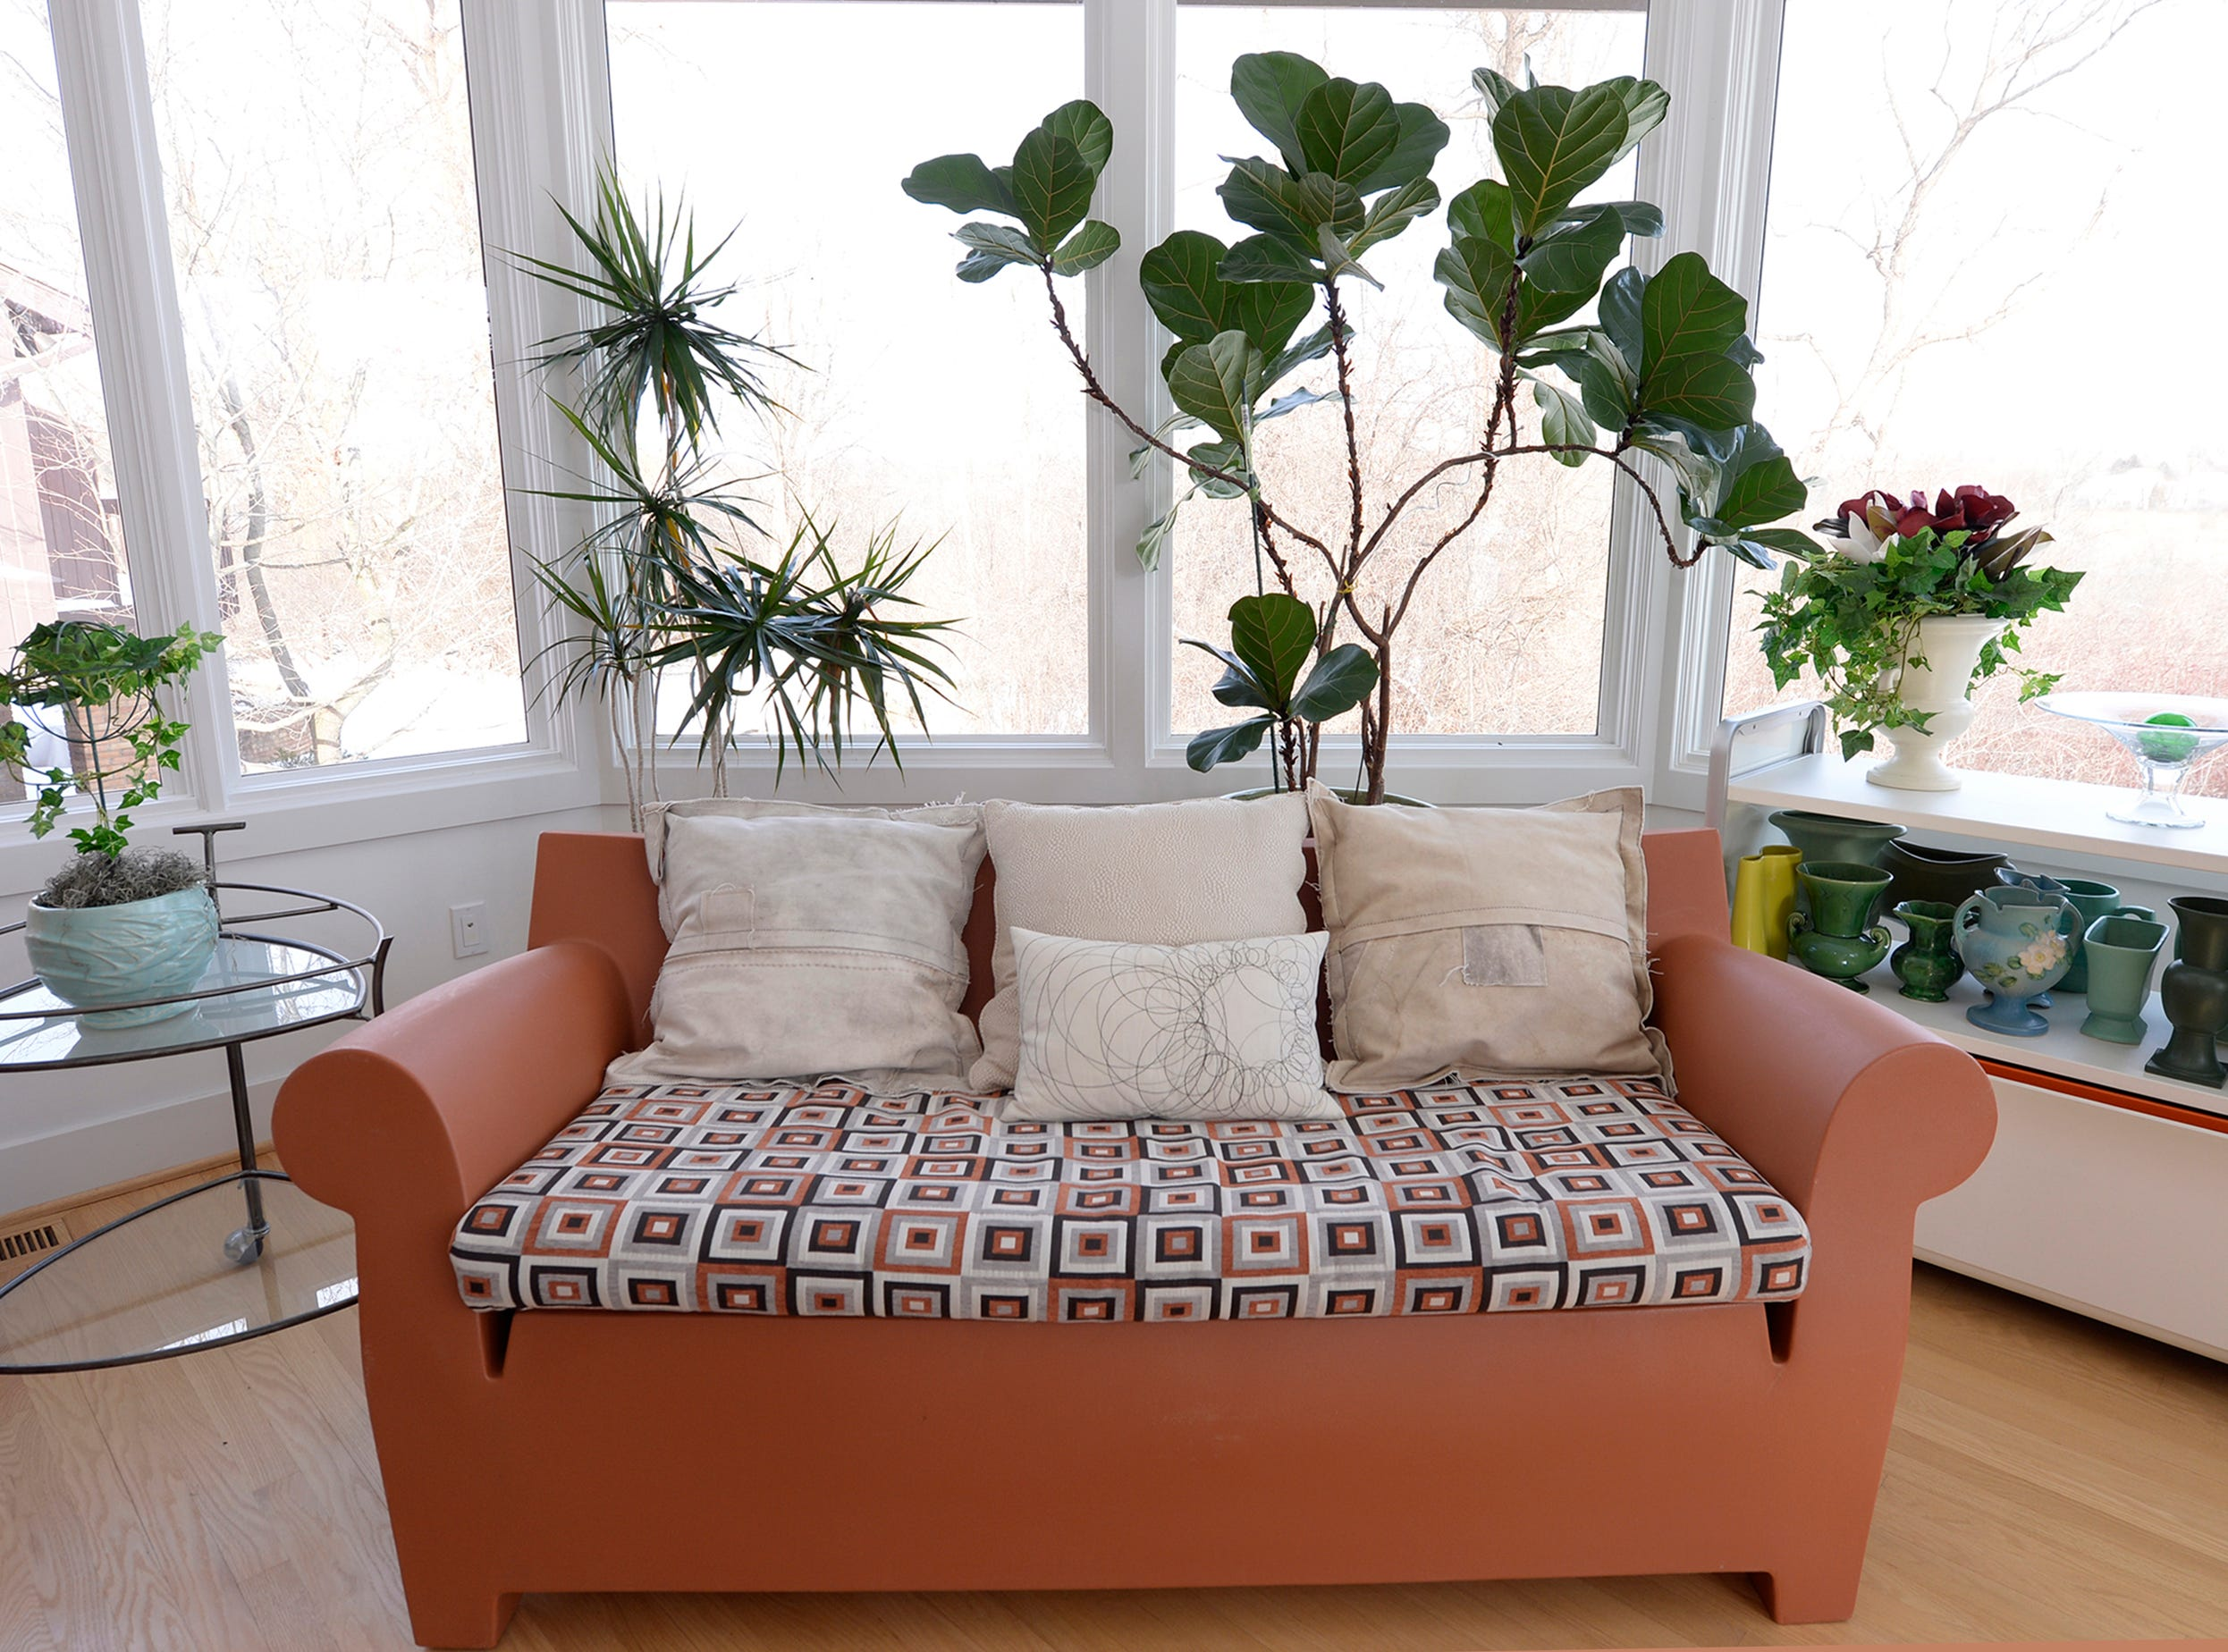 Detail shot of a sofa inside the conservatory room.